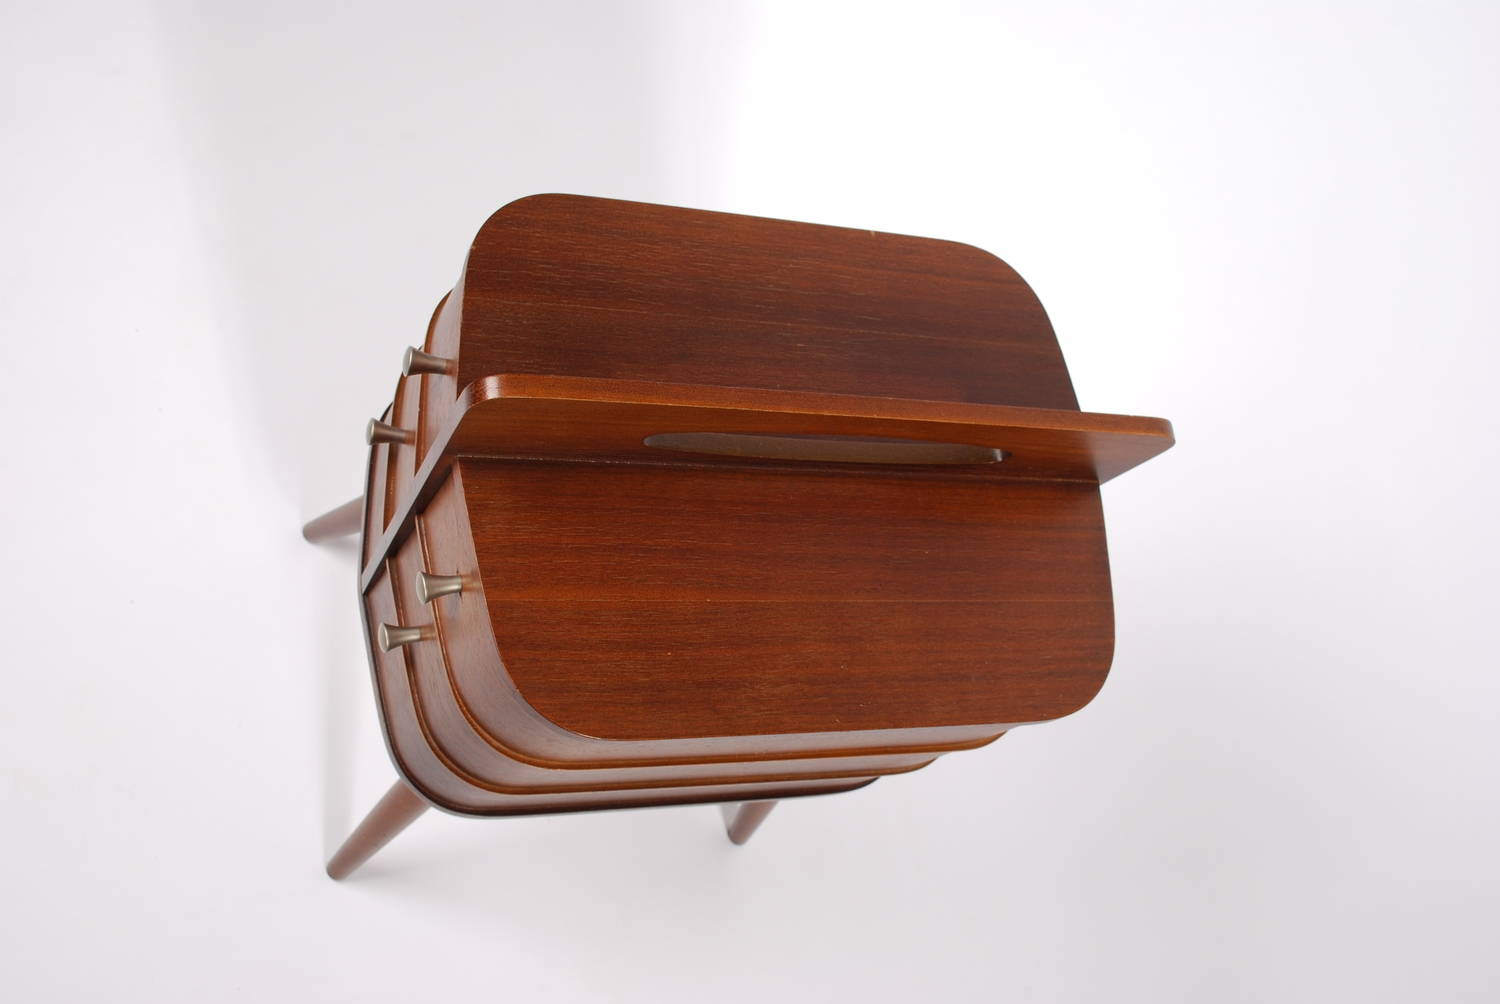 Sewing box, Danish design, 60's